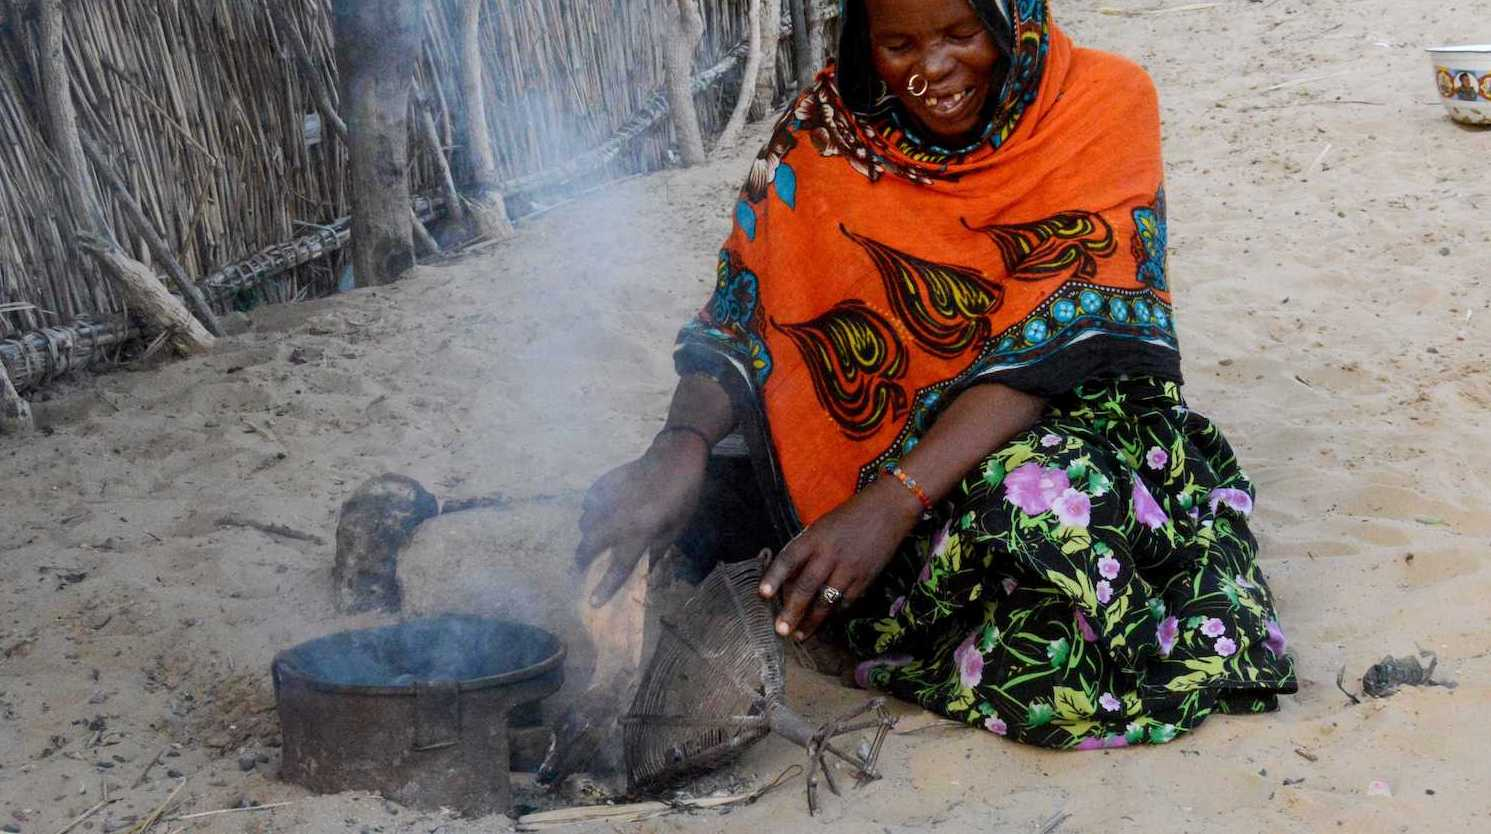 Kitchen stoves – safe and with low environmental impact